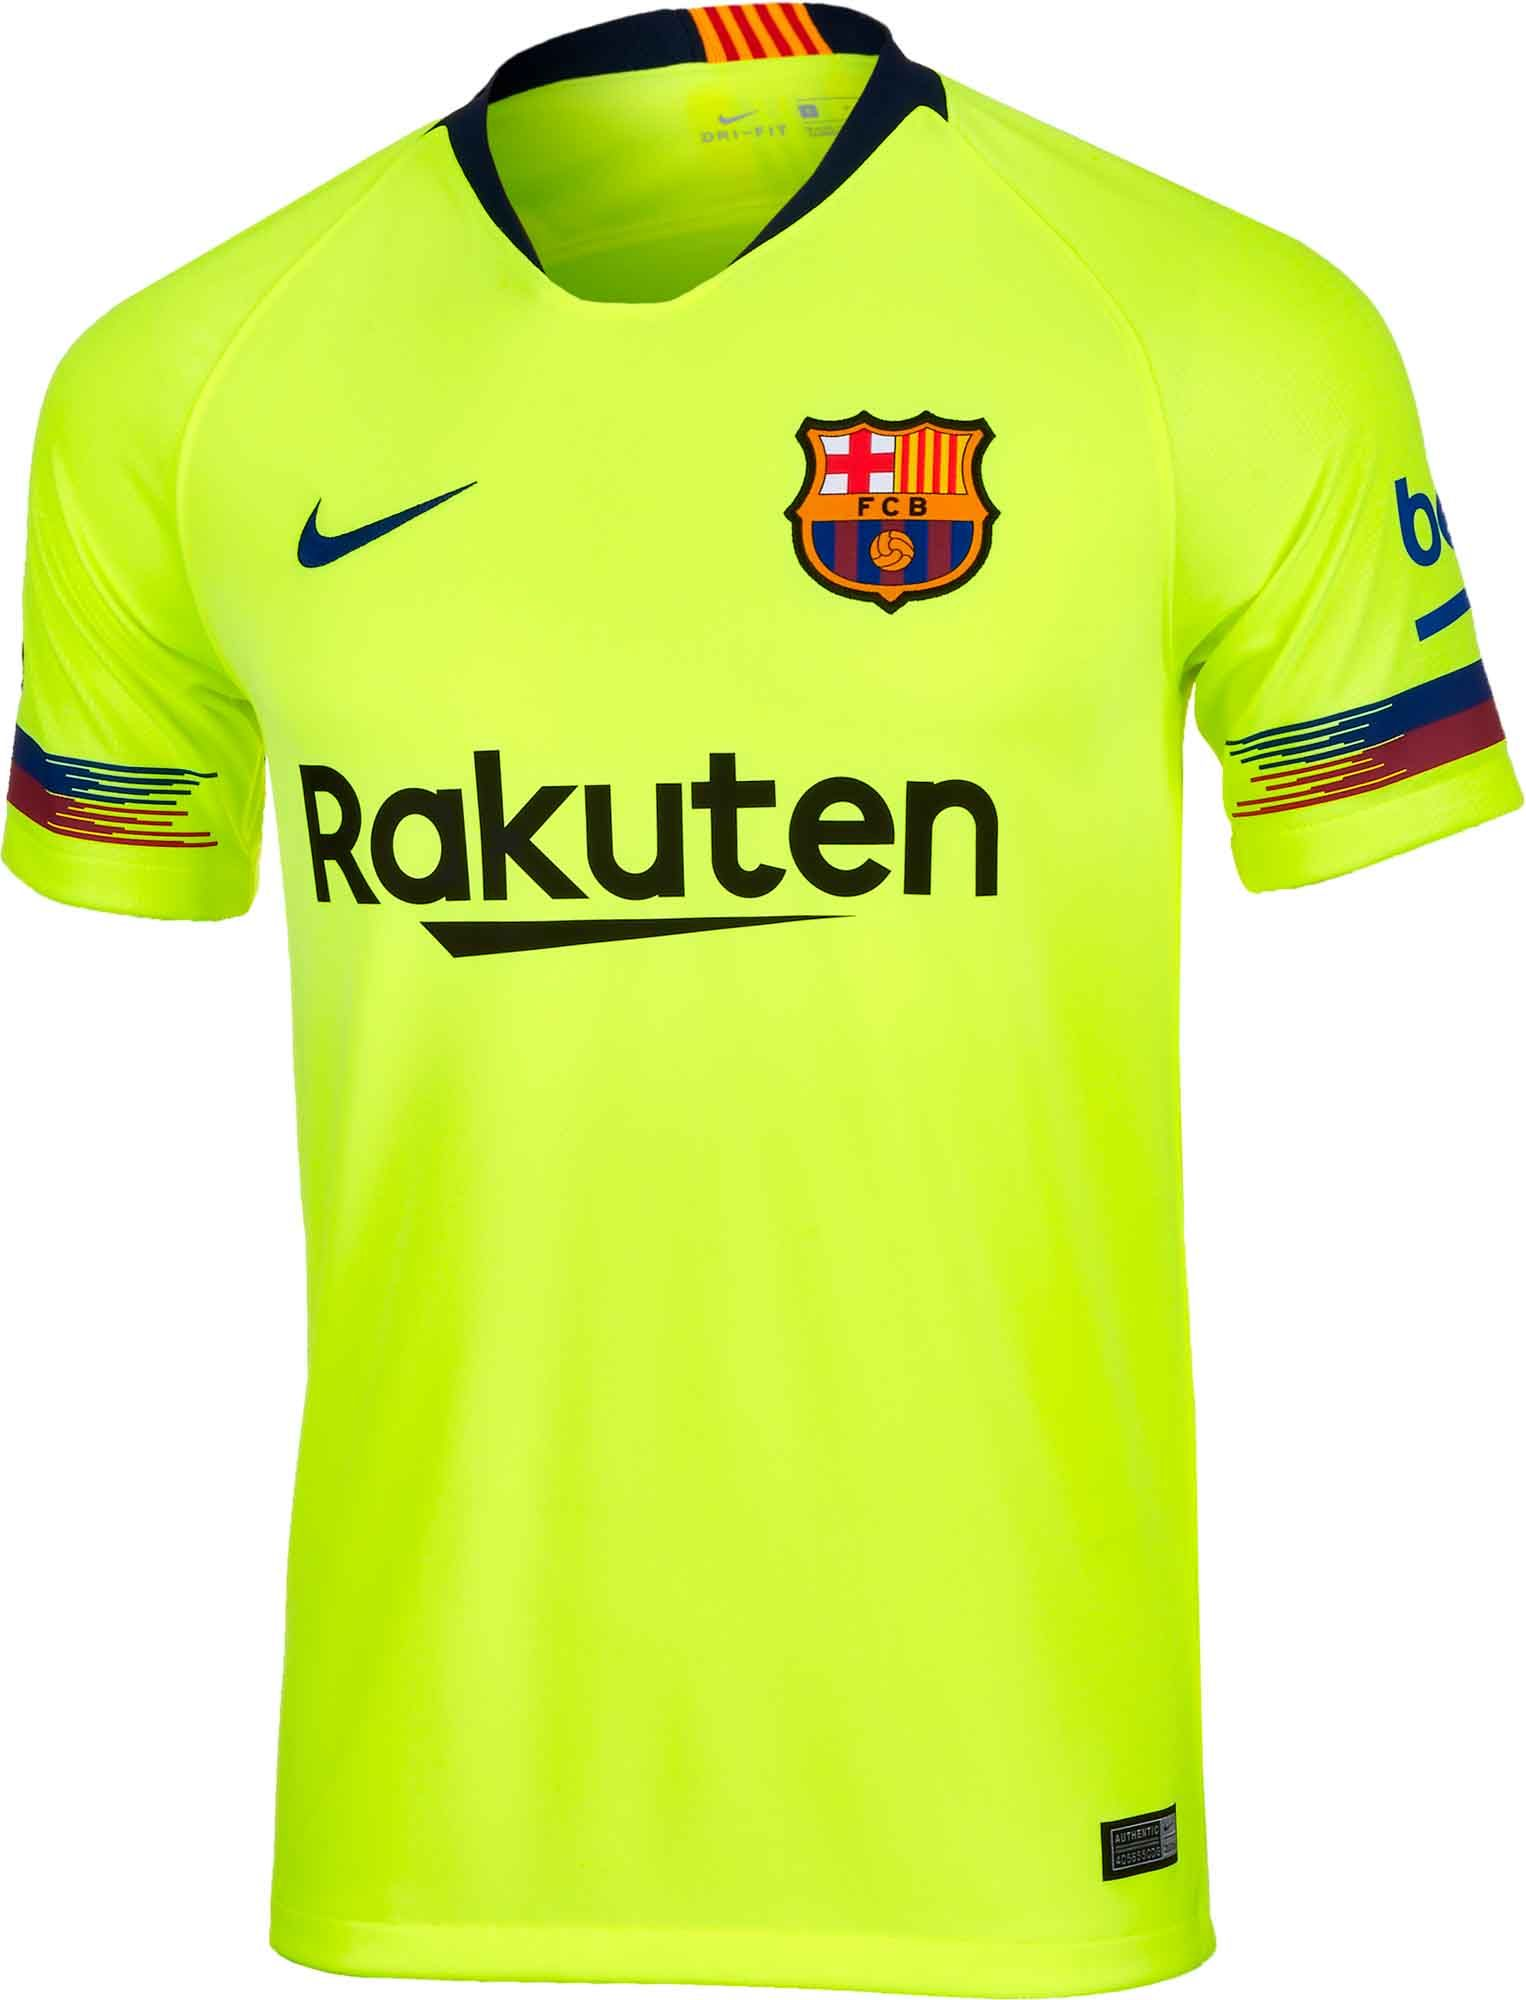 2018 19 Nike FC Barcelona Away Jersey. Buy it from SoccerPro. 706acbde6dcfb